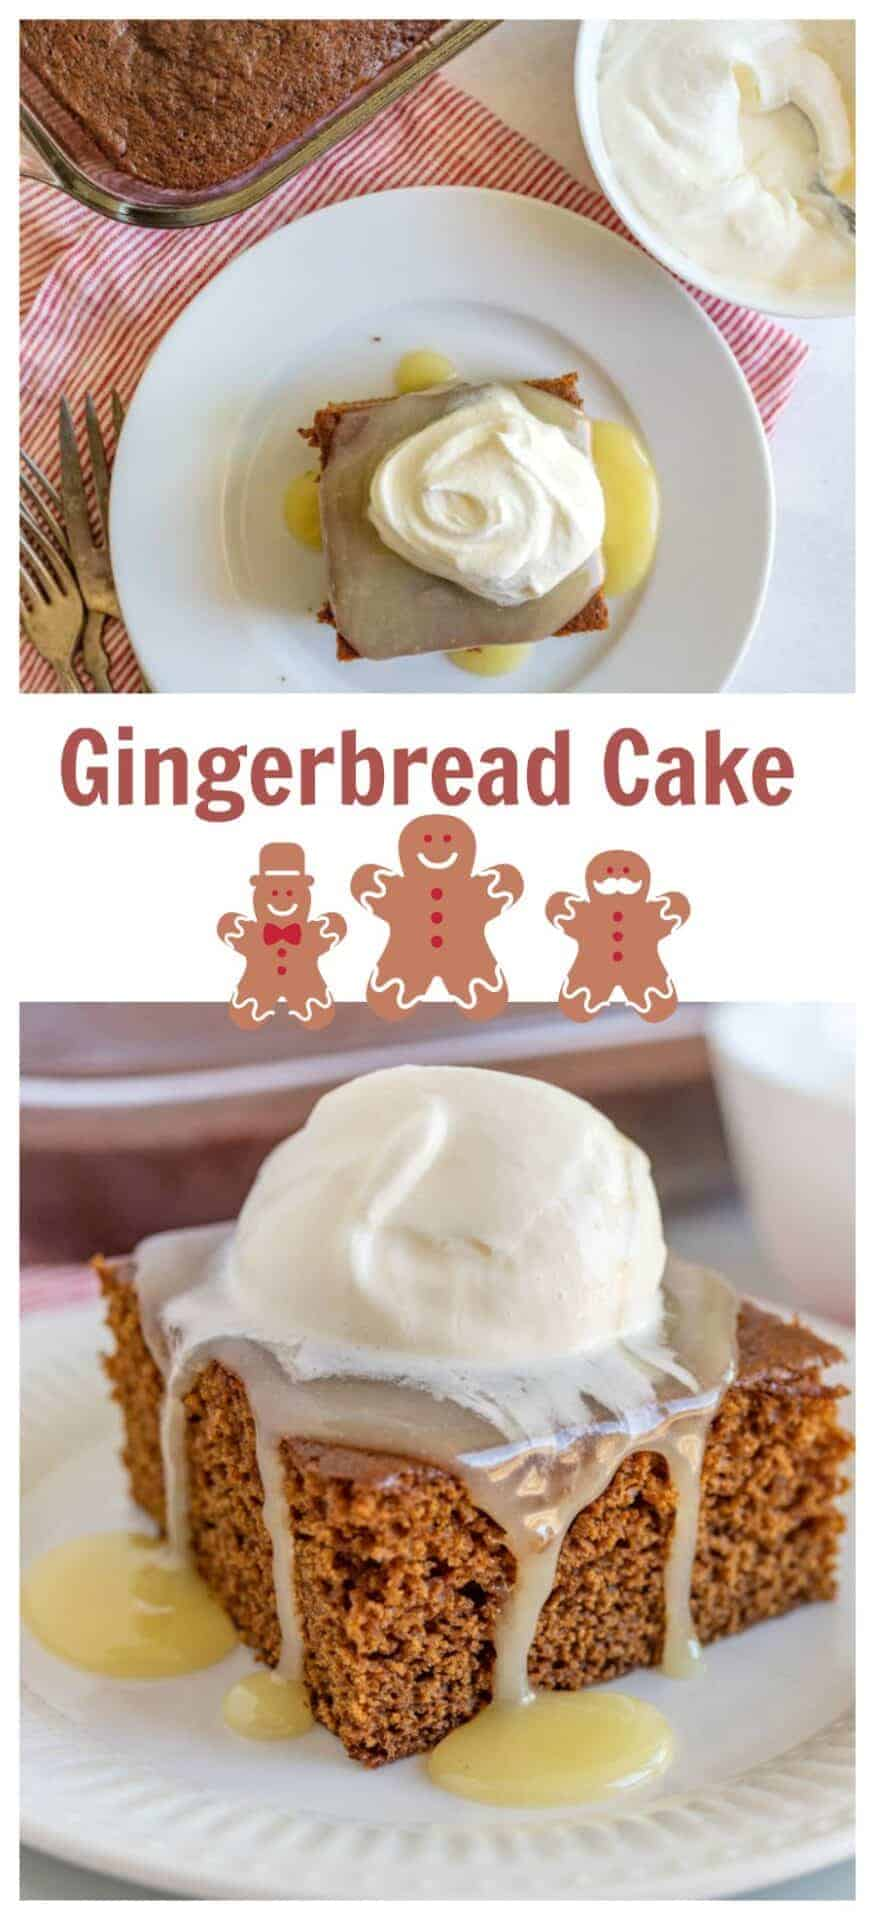 This gingerbread cake made with Bob's Red Mill all-purpose flour is absolutely delicious, easy to make, and the perfect festive holiday dessert to share with loved ones by a cozy fire sipping warm mugs of apple cider. #BobsRedMill #gingerbreadcake #gingerbreadcakerecipe #homemadegingerbreadcake #holidaydesserts #holidaybaking